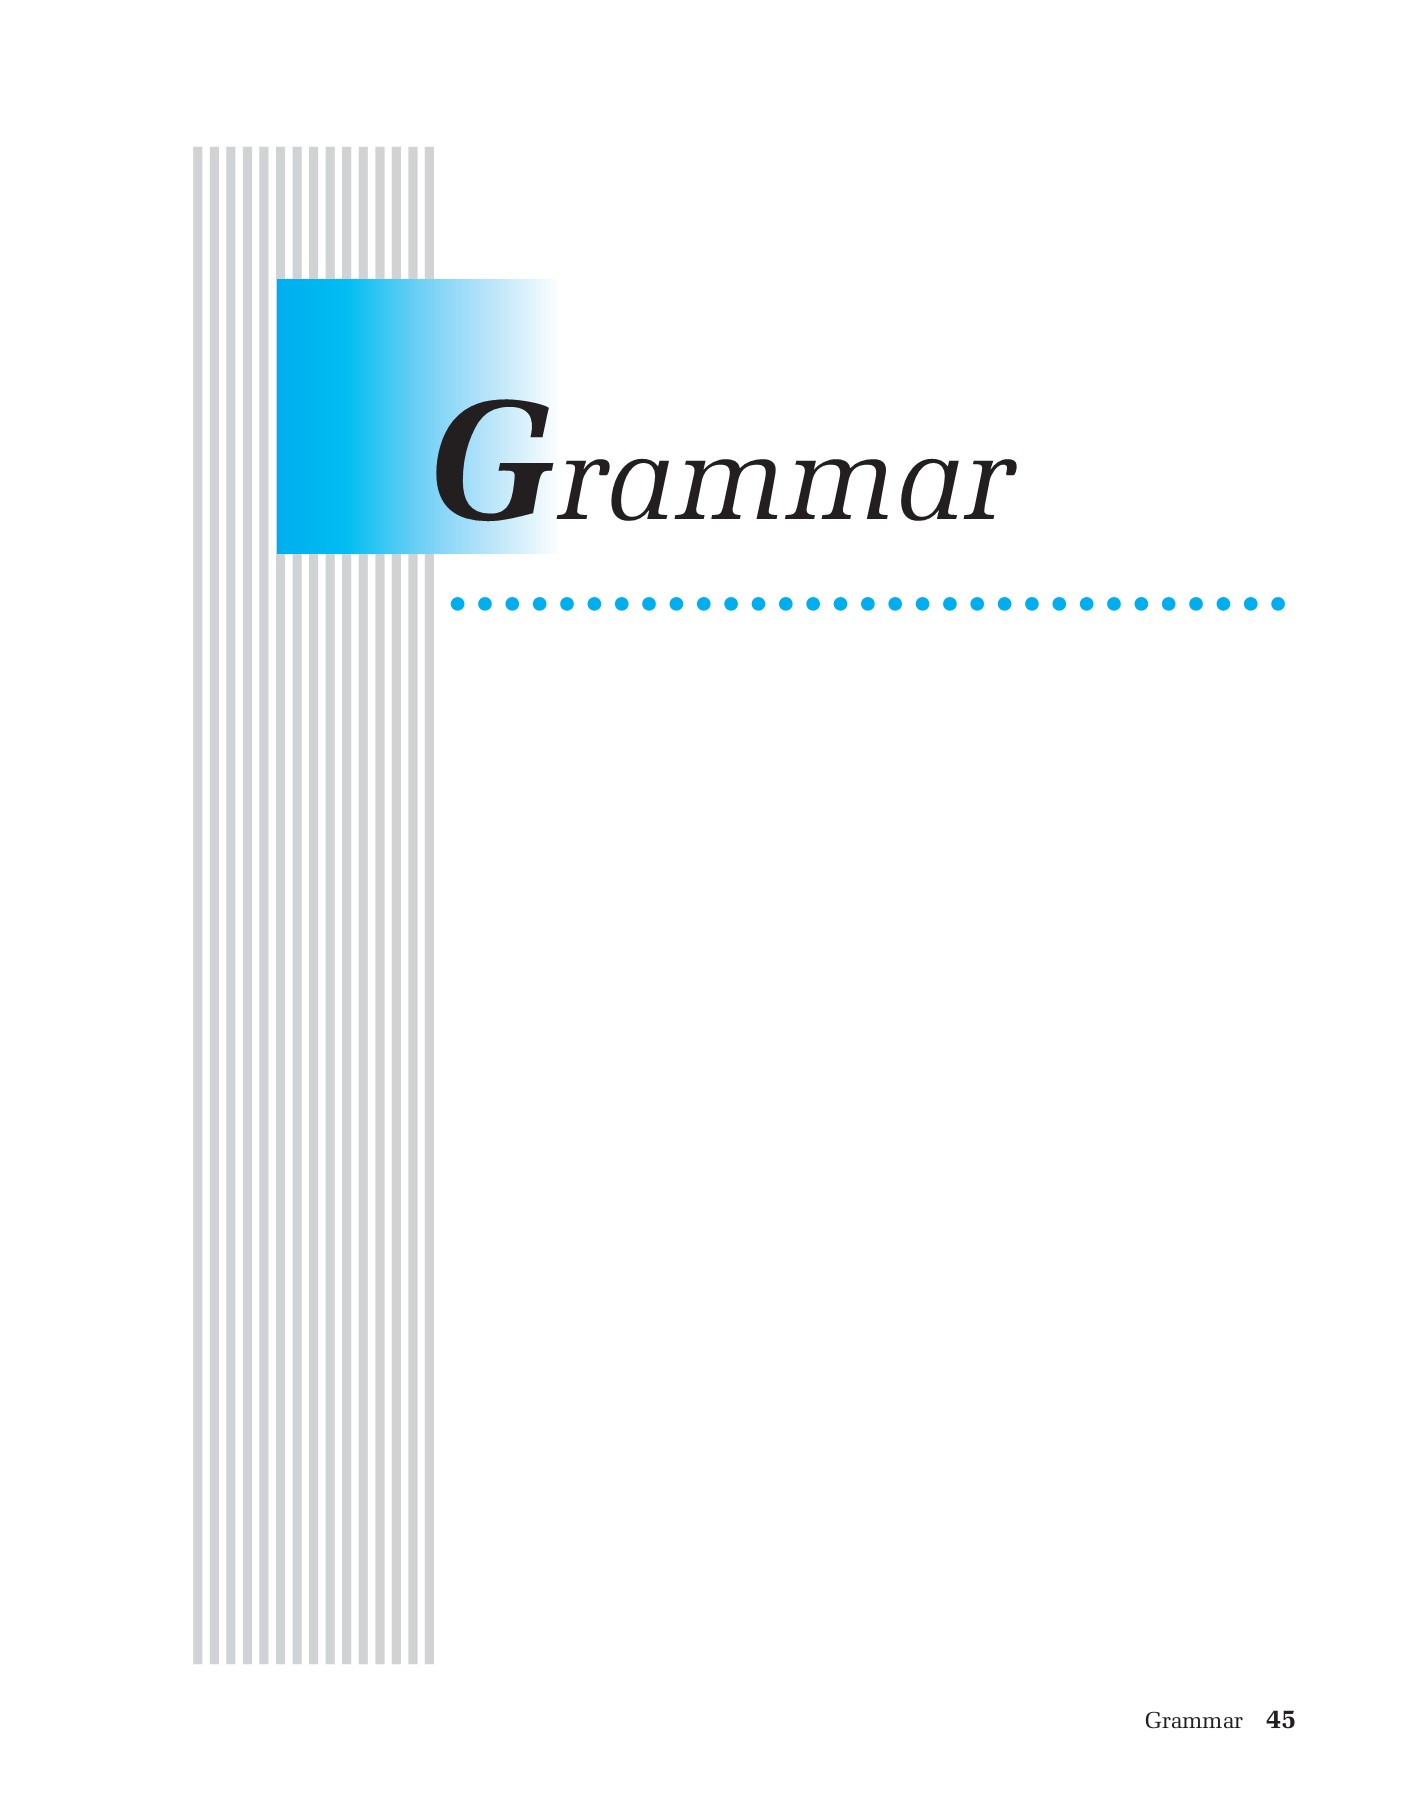 4  Grammar Pages 1 - 50 - Text Version | AnyFlip